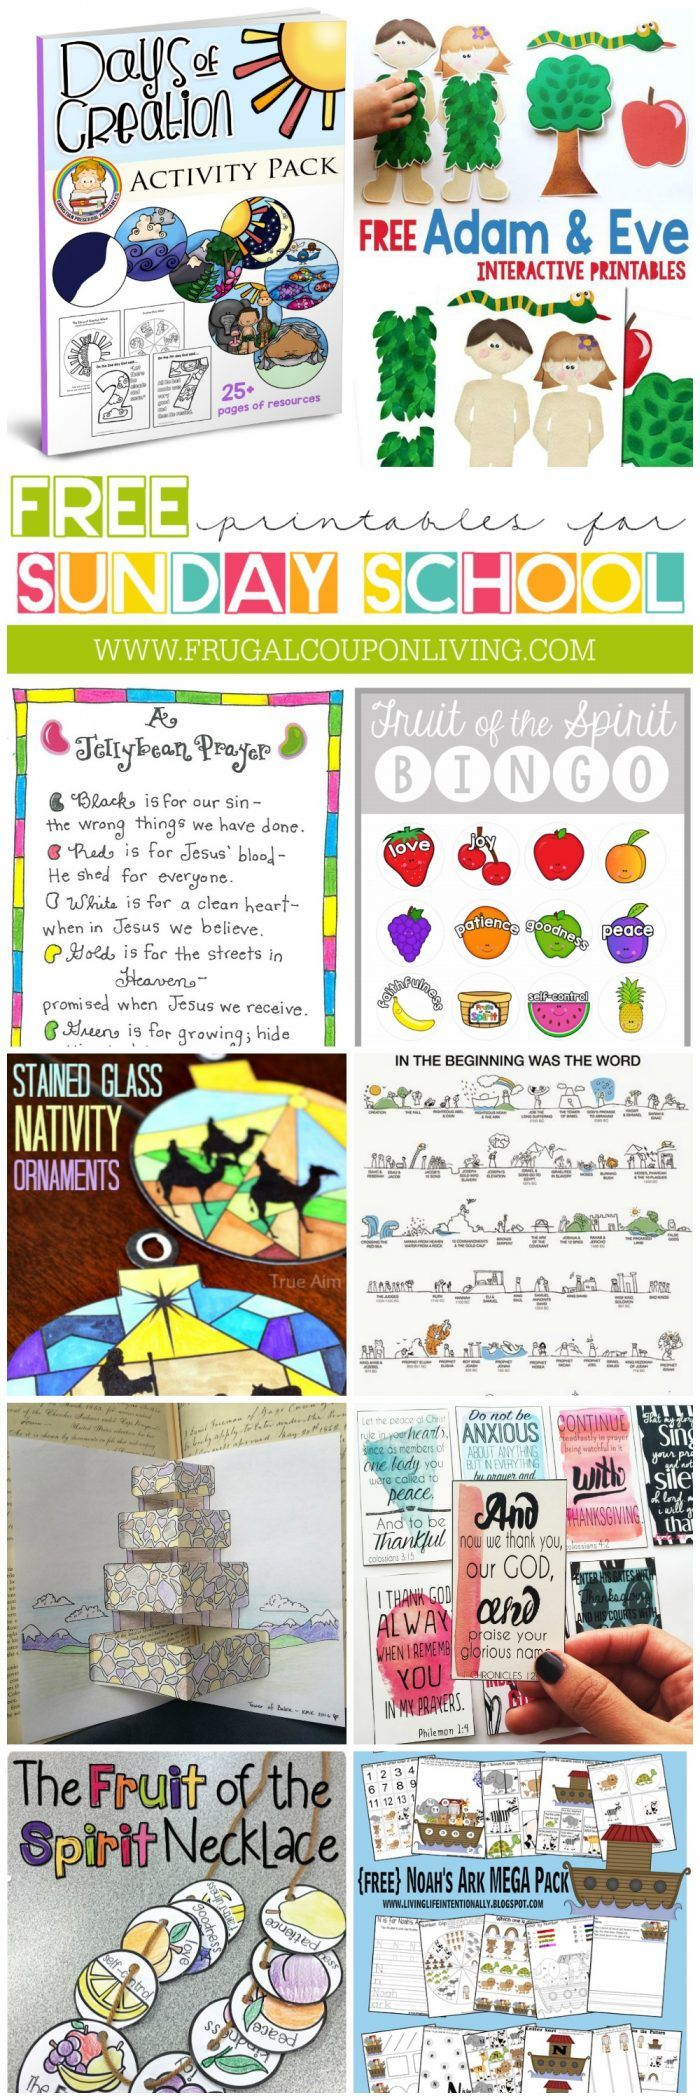 sunday-school-printables-frugal-coupon-living-long